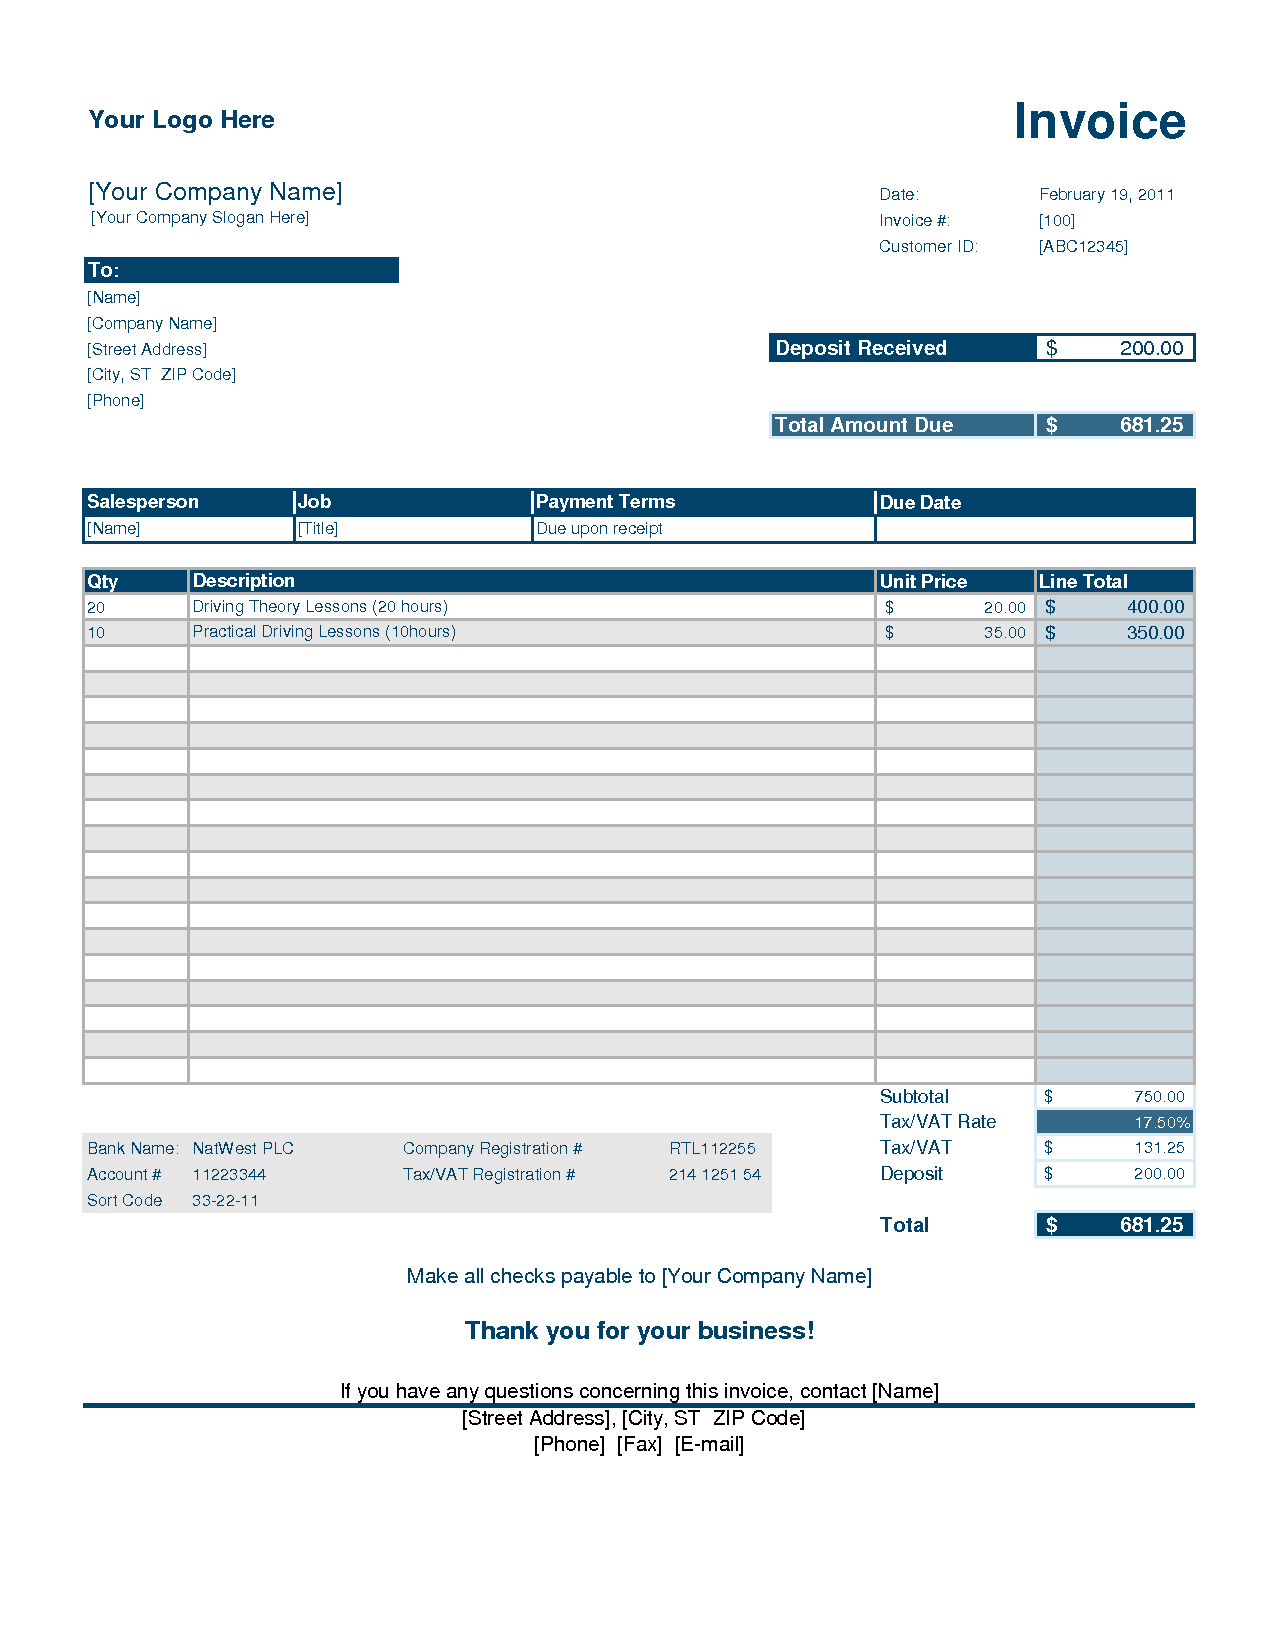 Free Blank Invoice Templates 10 Sample Forms To Download Deposit Invoice Template Invoice Example